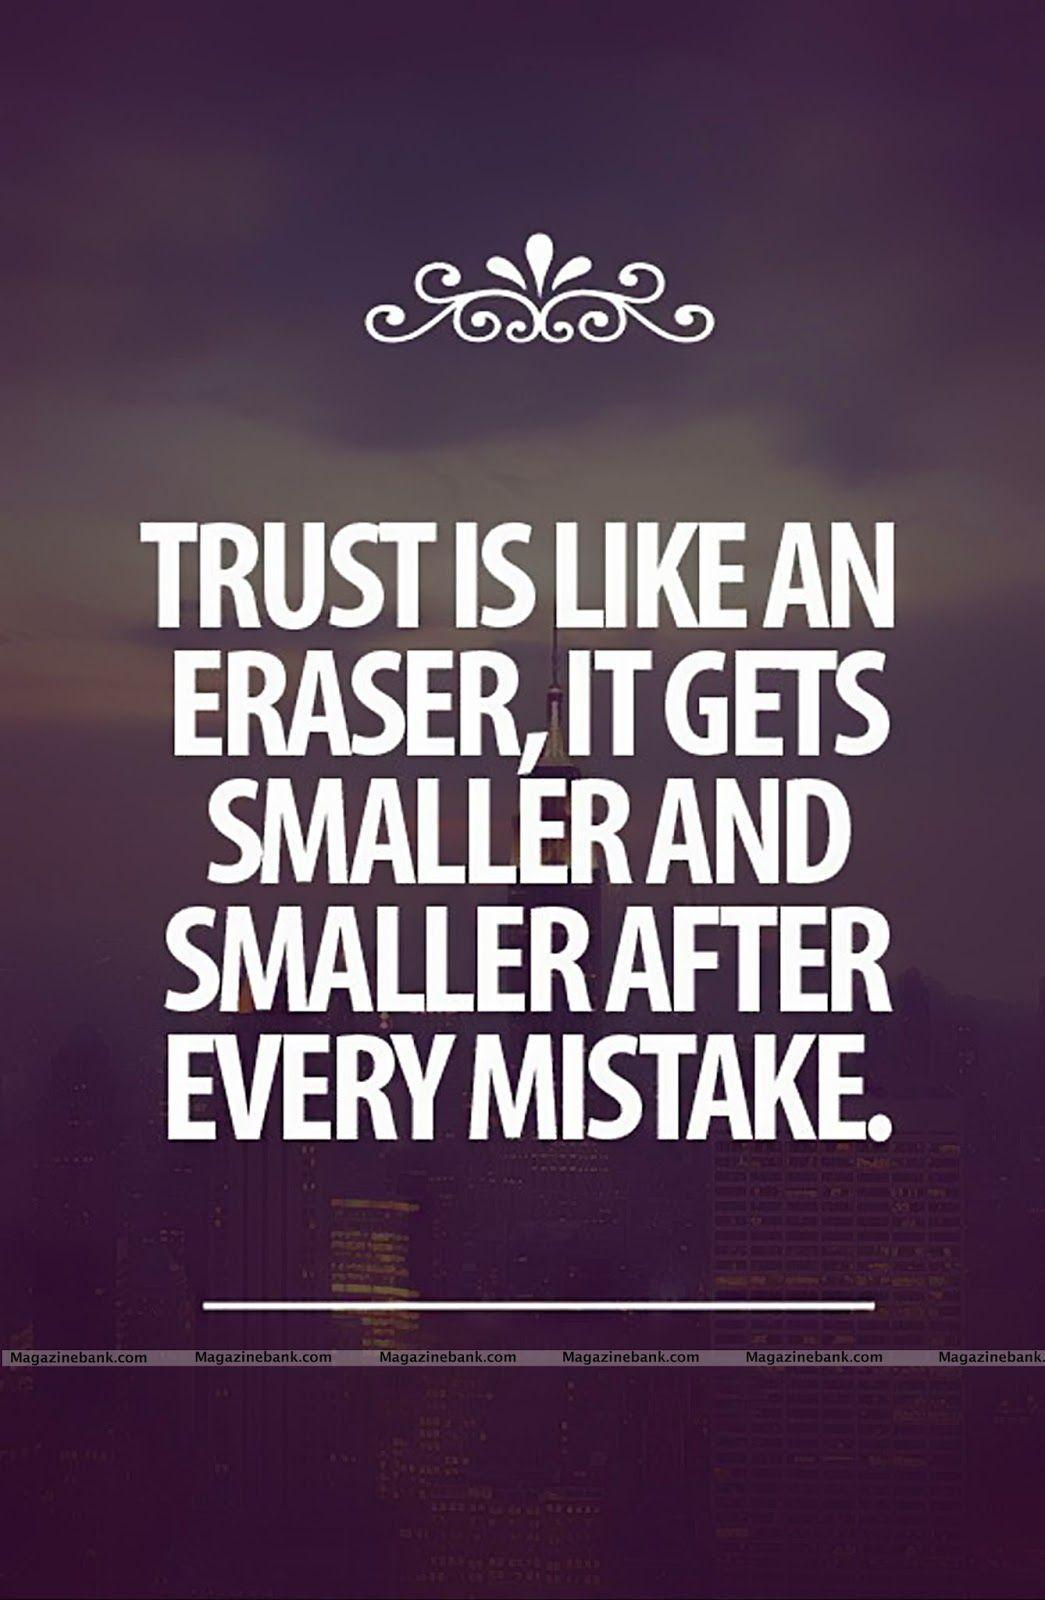 Trust Quotes For Facebook Tumblr Image and Wallpapers